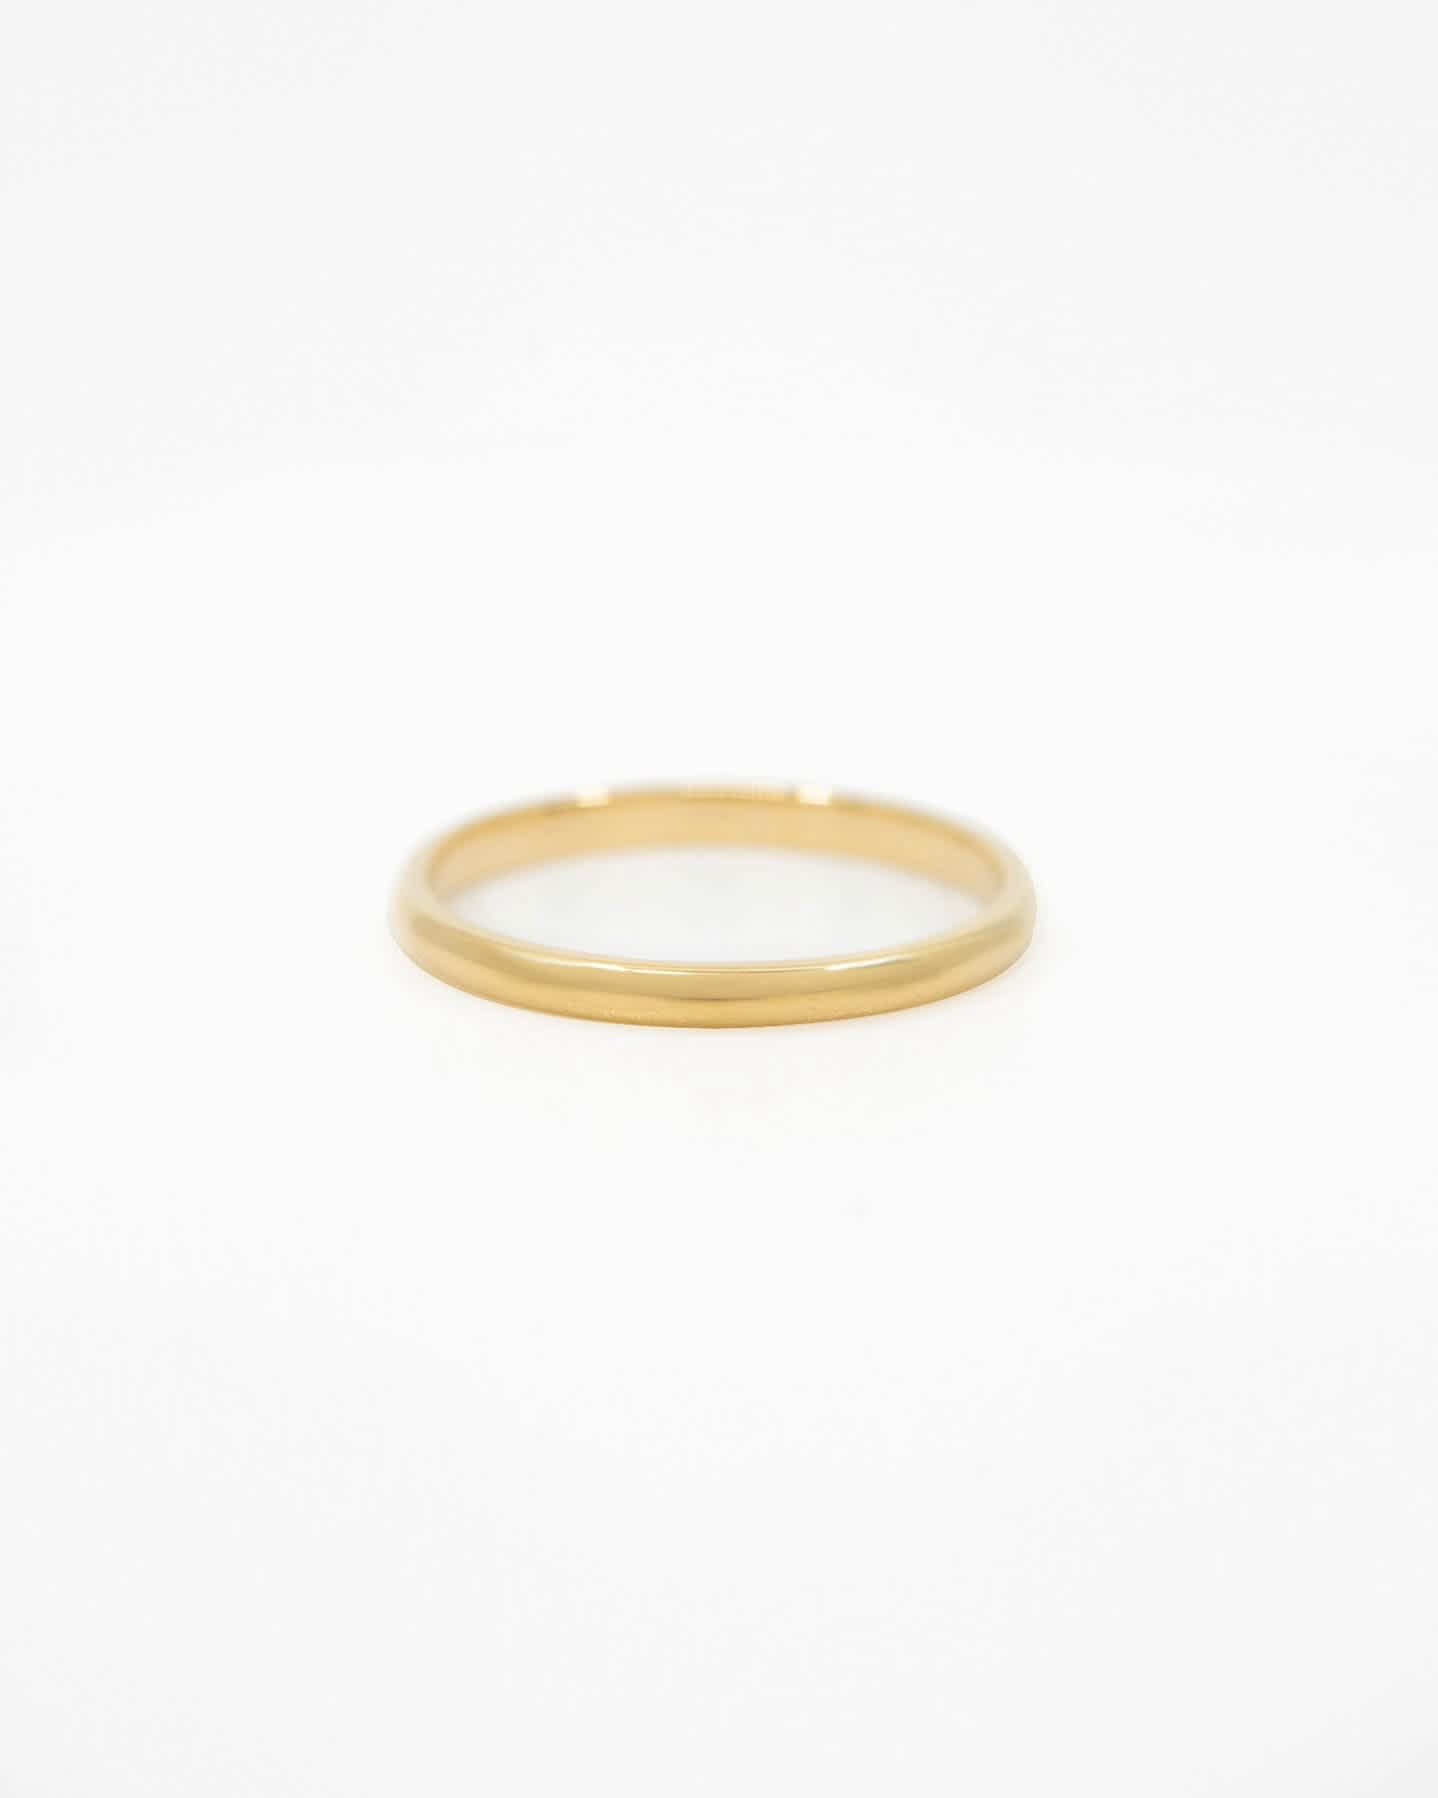 You May Also Like - 14k Gold Classic Band - Yellow Gold